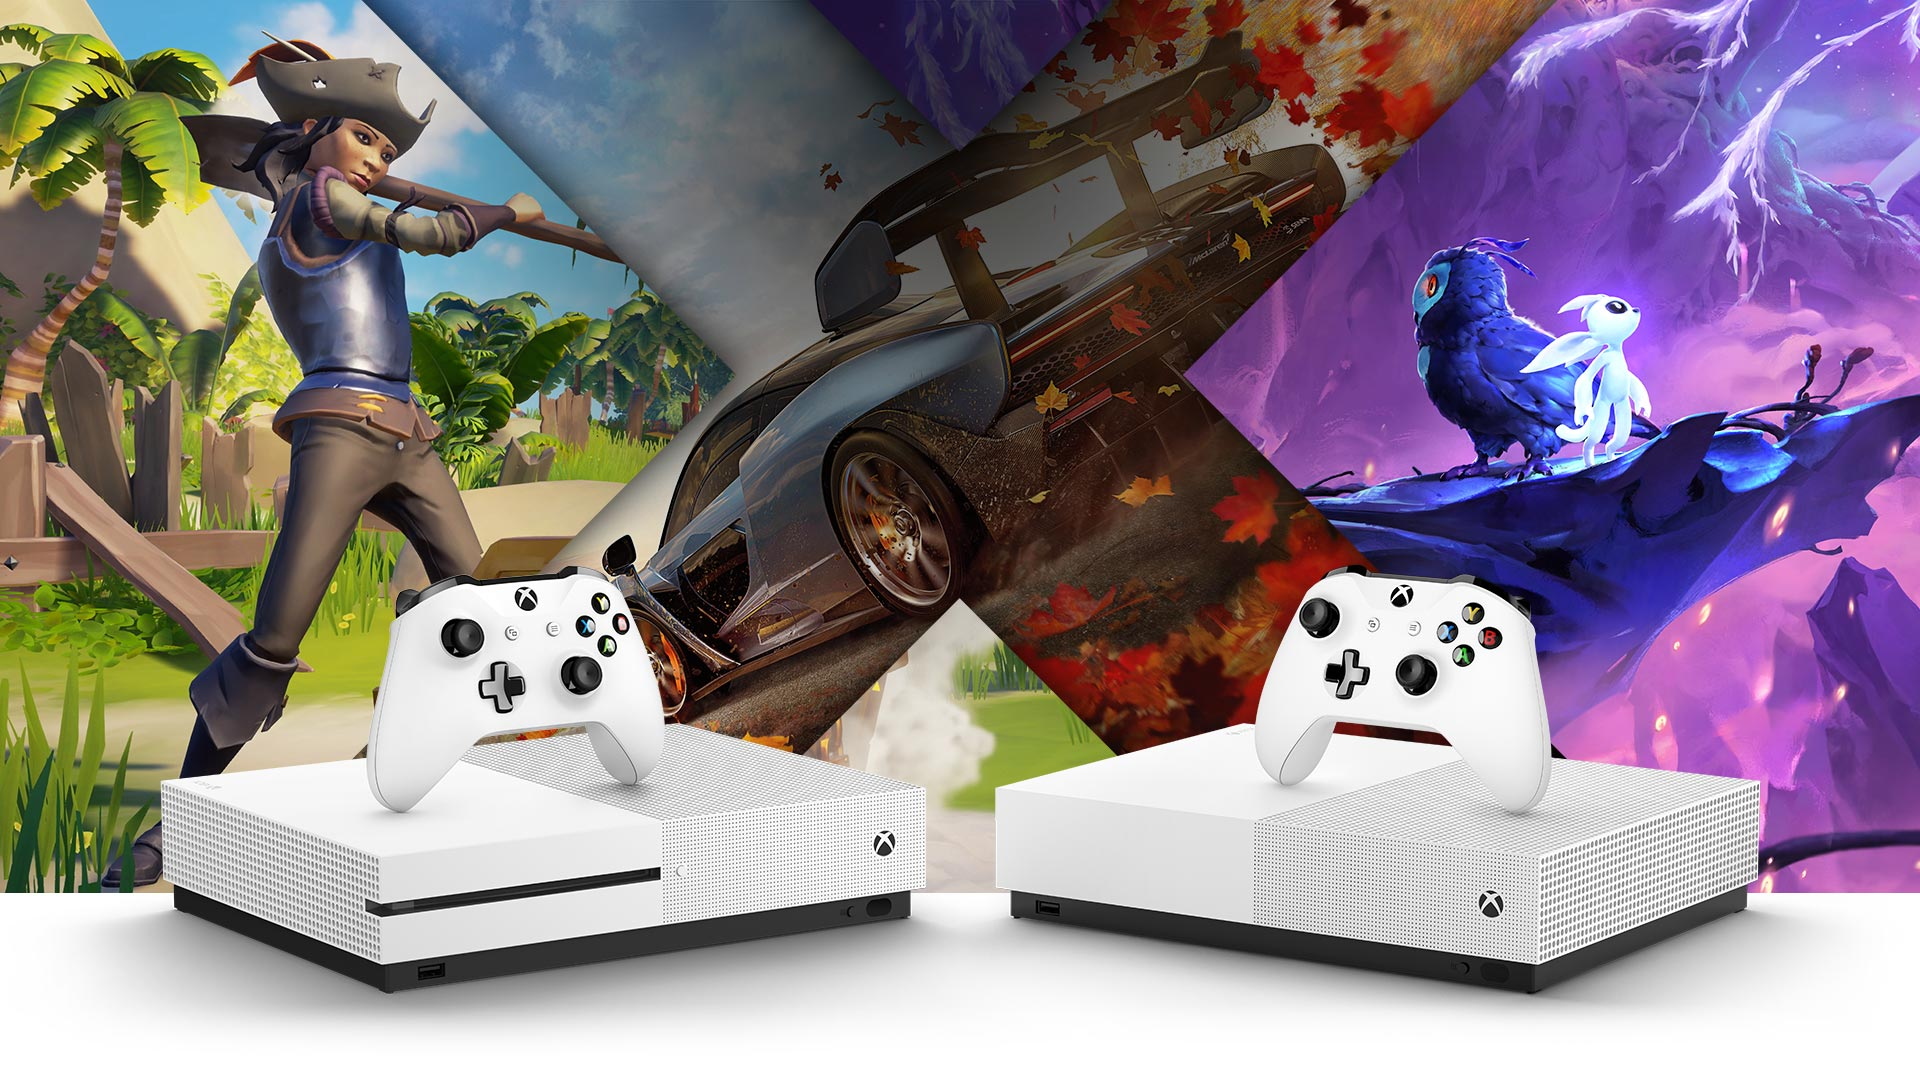 Front view of Xbox One S and Xbox One S All Digital Edition surrounded by Sea of Thieves, Forza Horizon 4, Ori and the Will of Wisps artwork